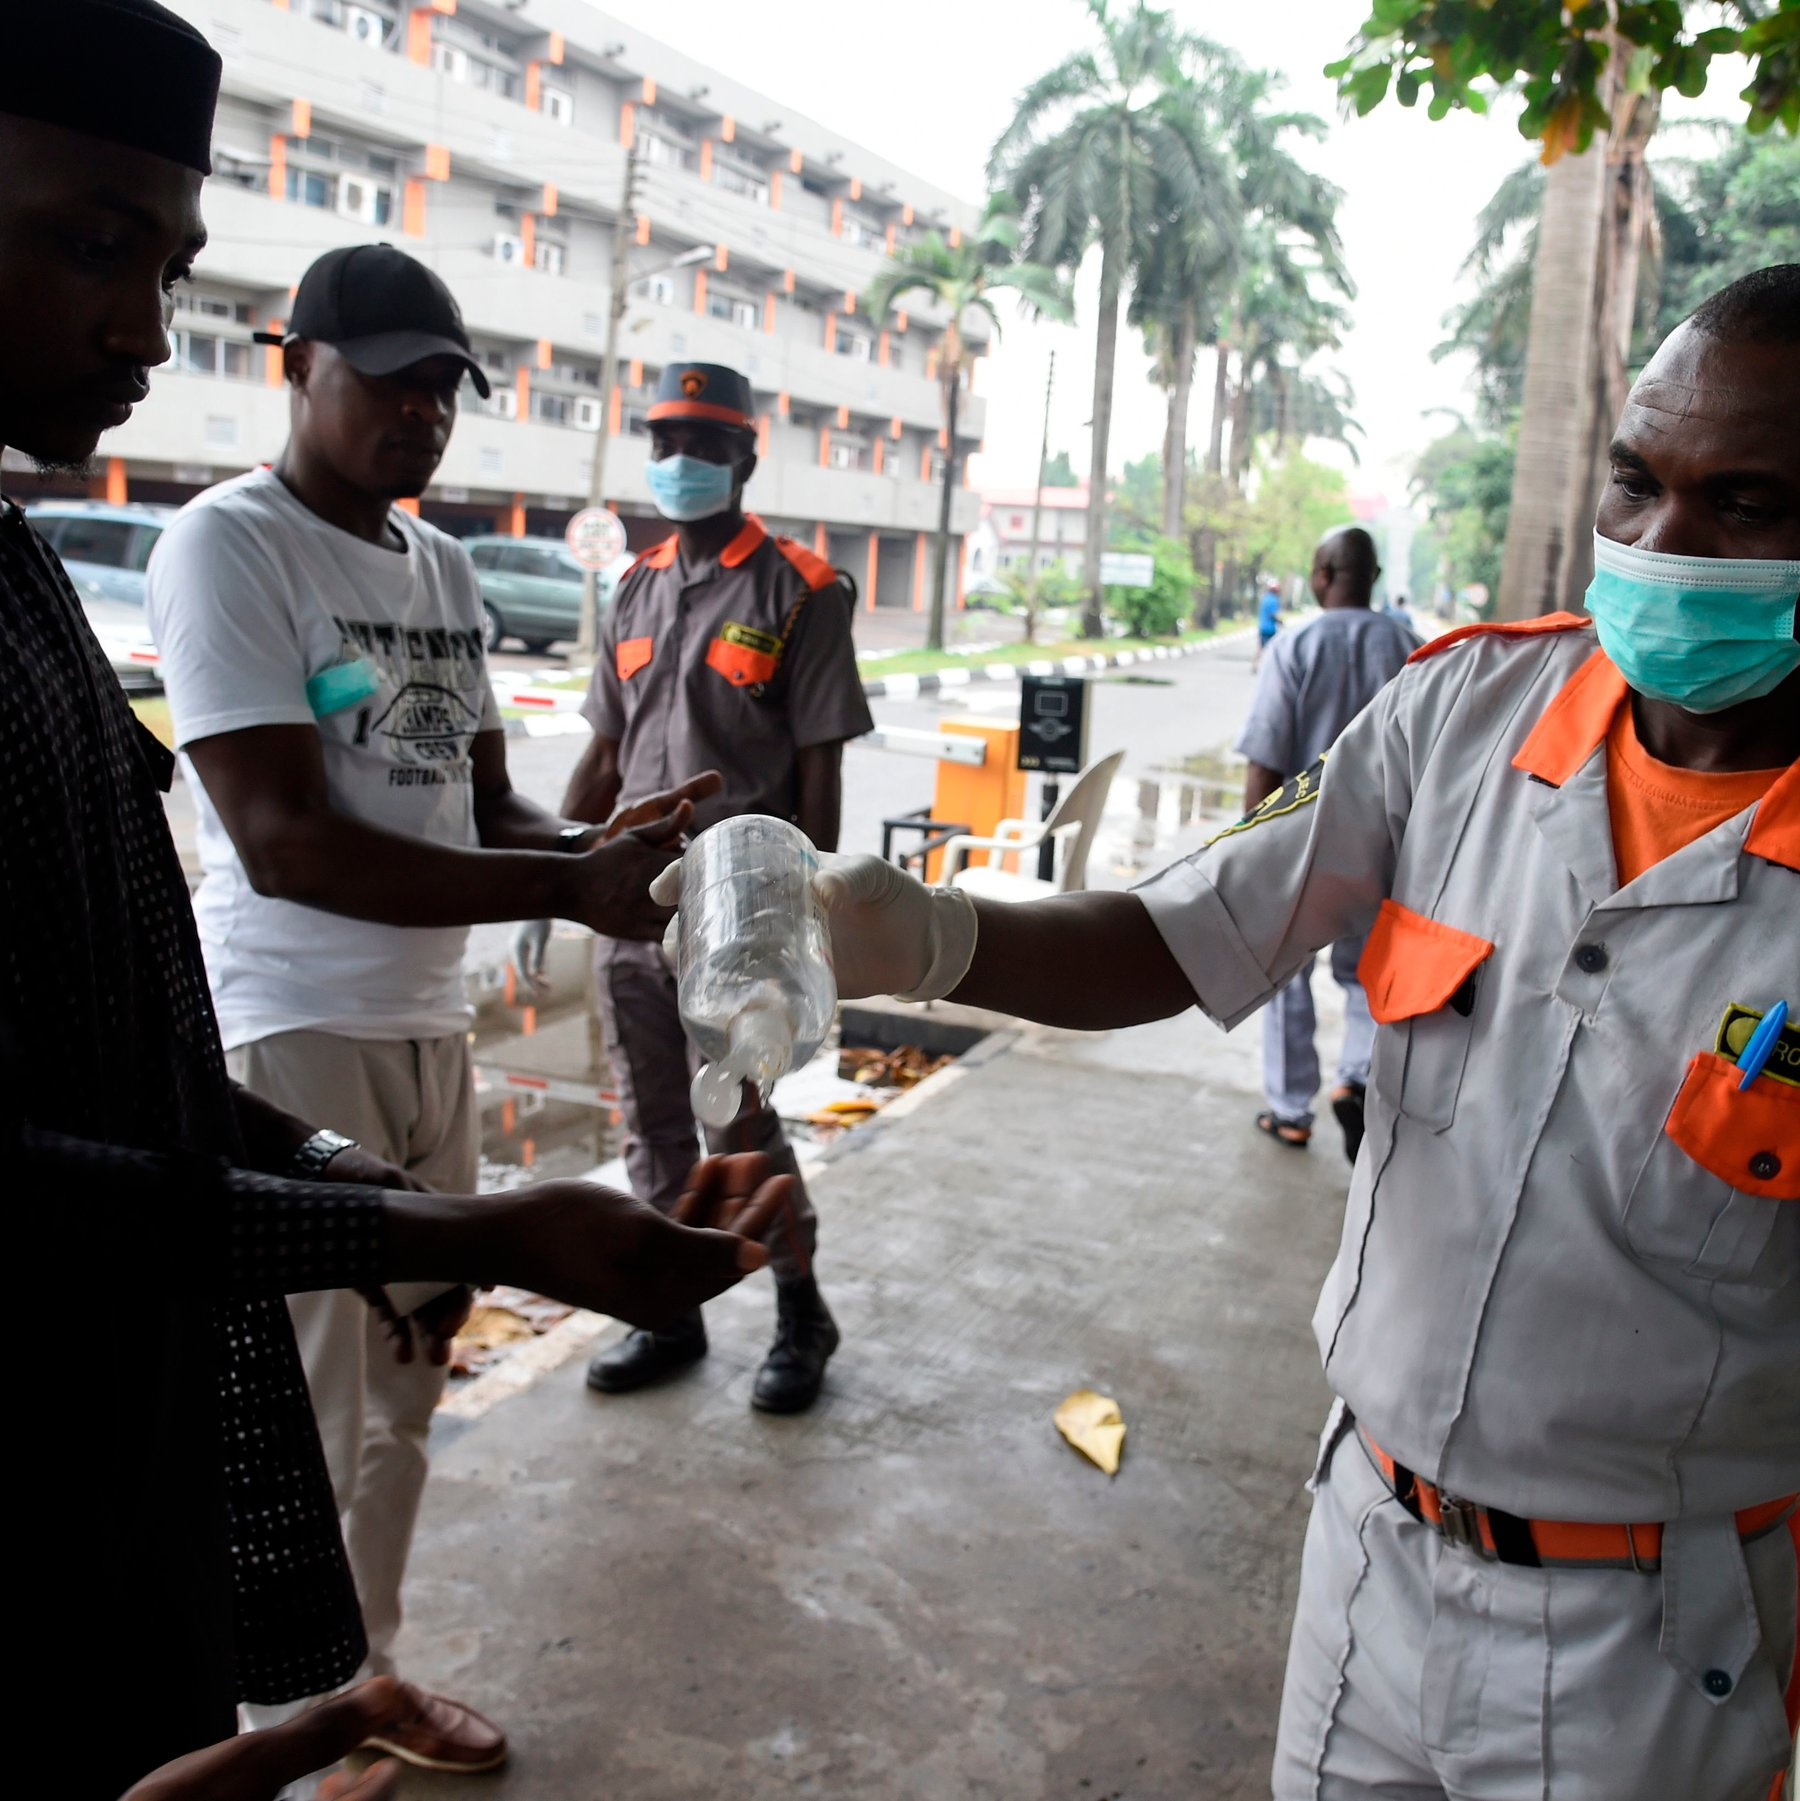 Senegal Registers 2nd Coronavirus case while Zimbabwe Threatens Deportation Of Entrants - Newslibre